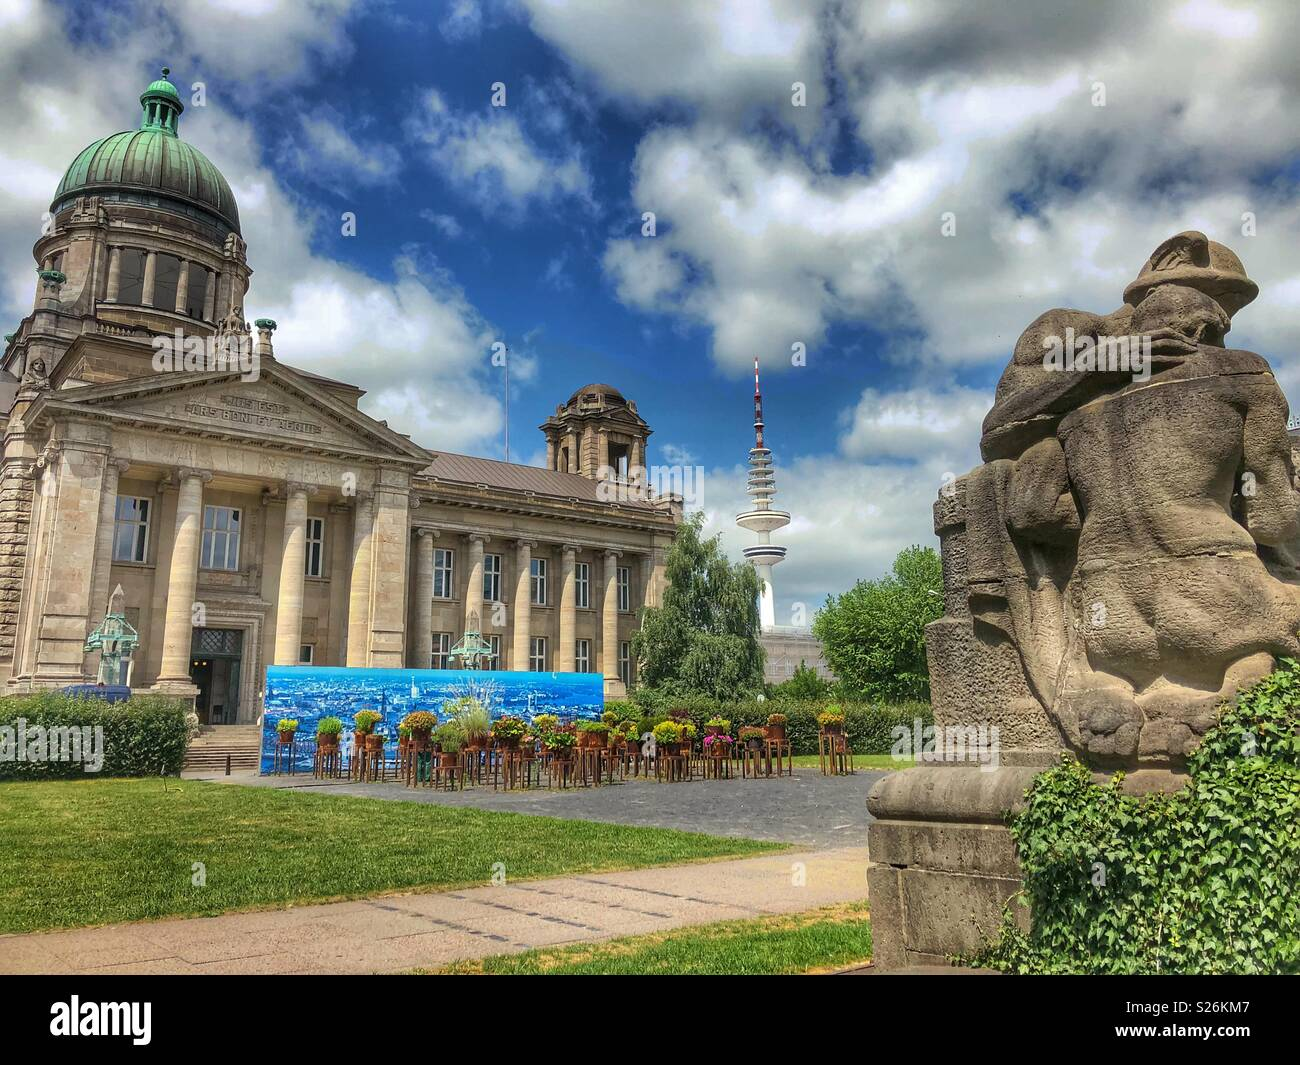 Justice building in Hamburg, northern Germany. - Stock Image